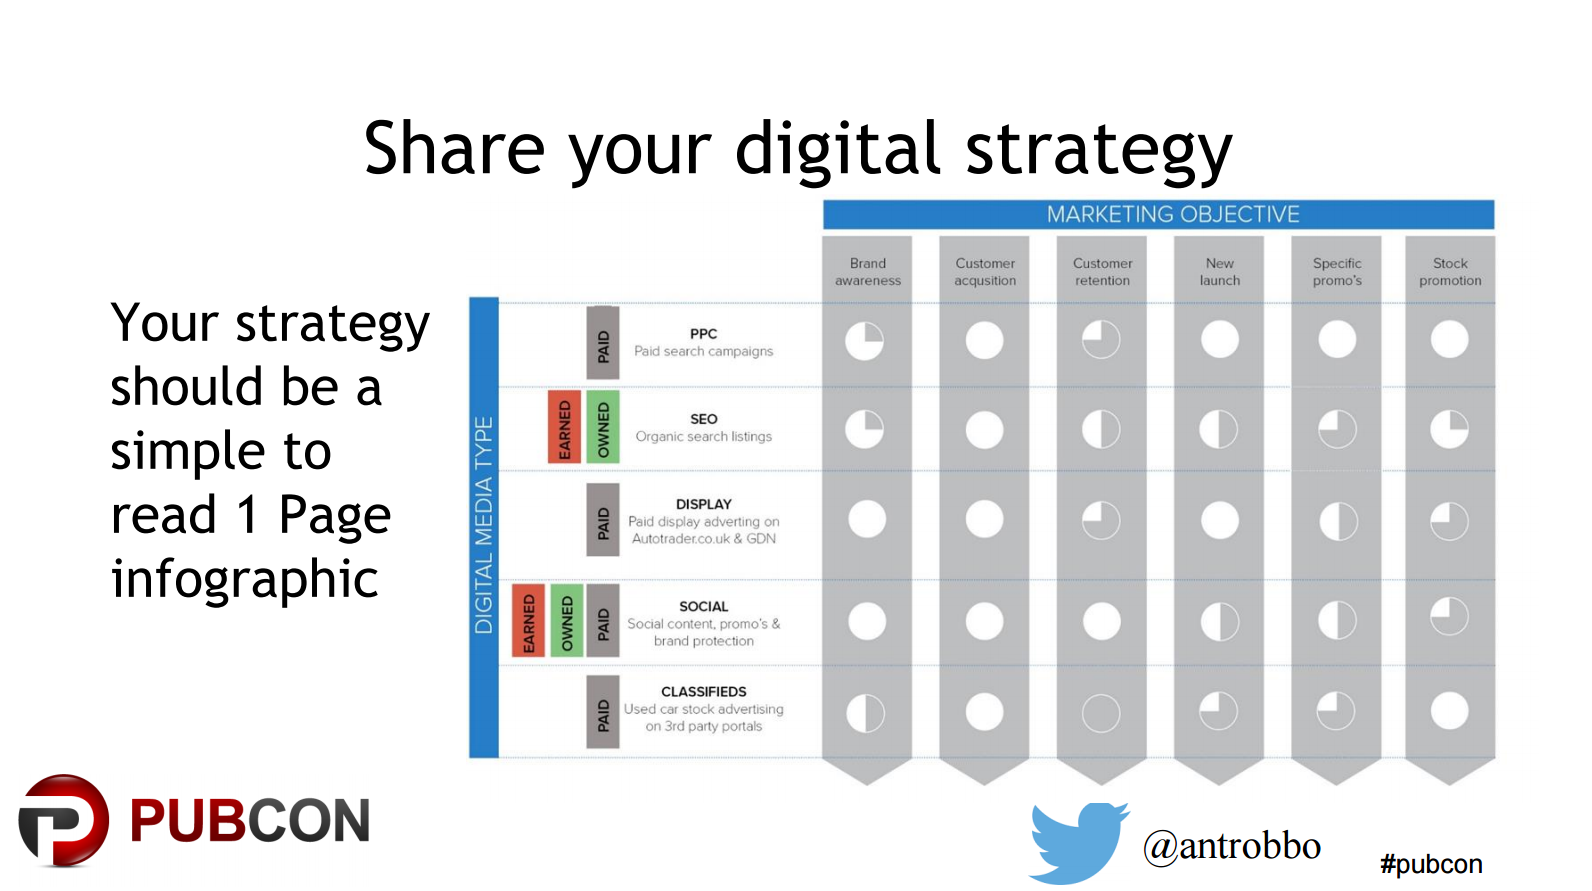 To enable your C-Level Management put your digital strategy in one page